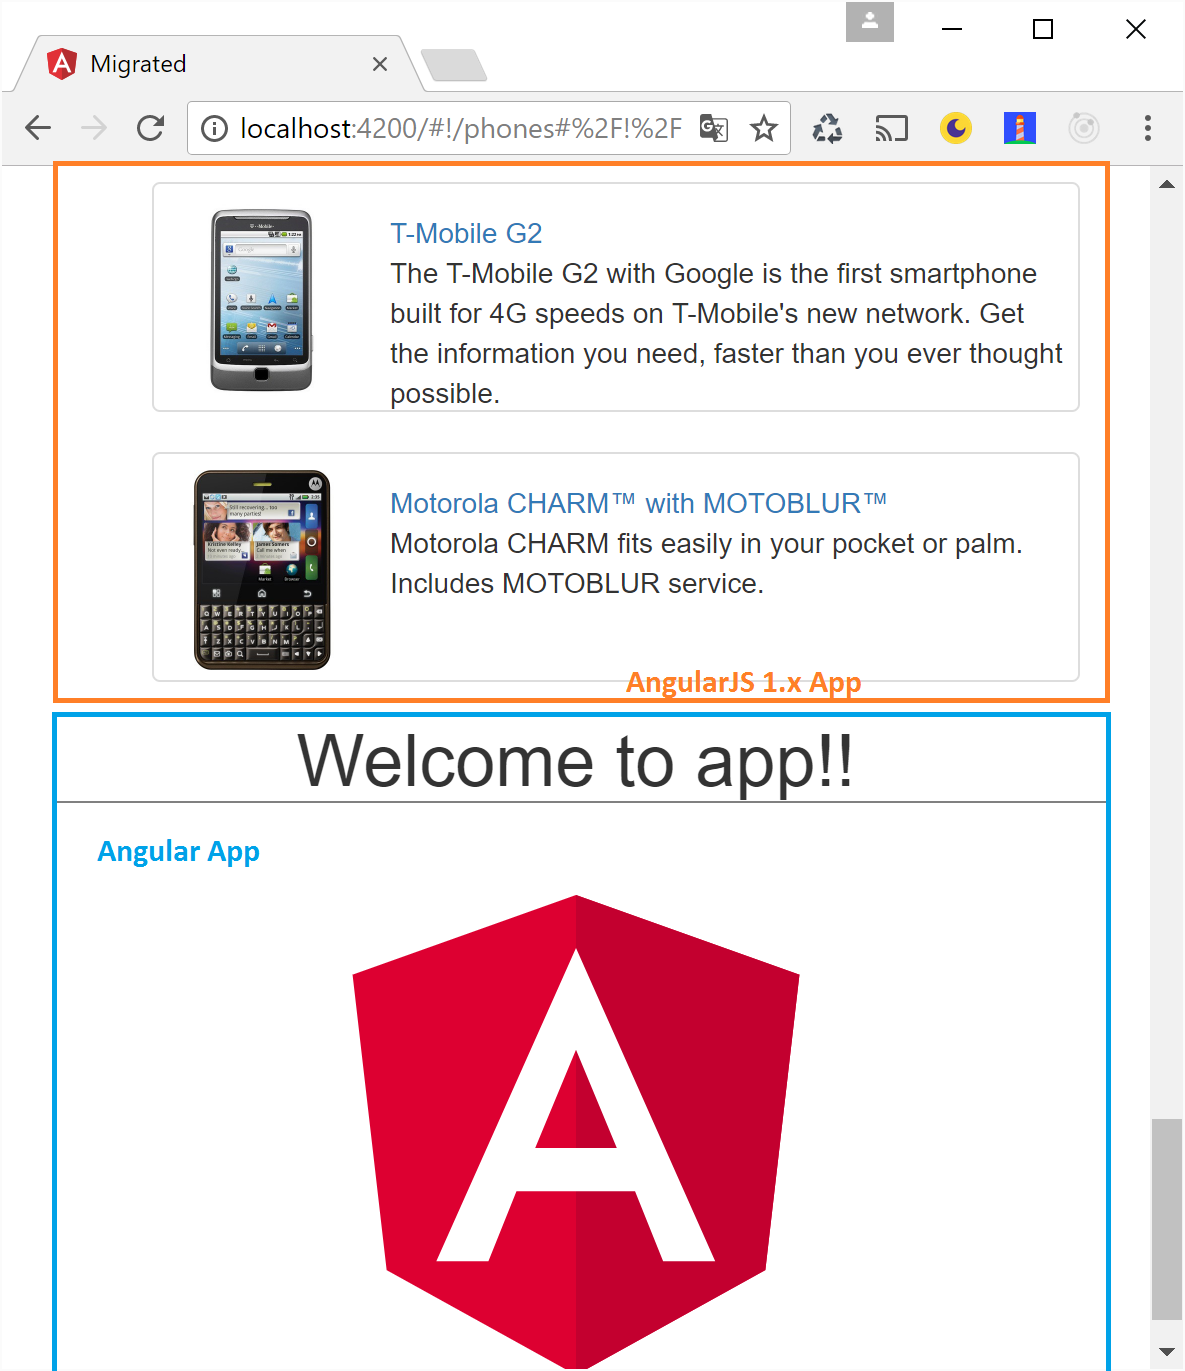 Directly upgrading from AngularJS 1 x to Angular without preparing